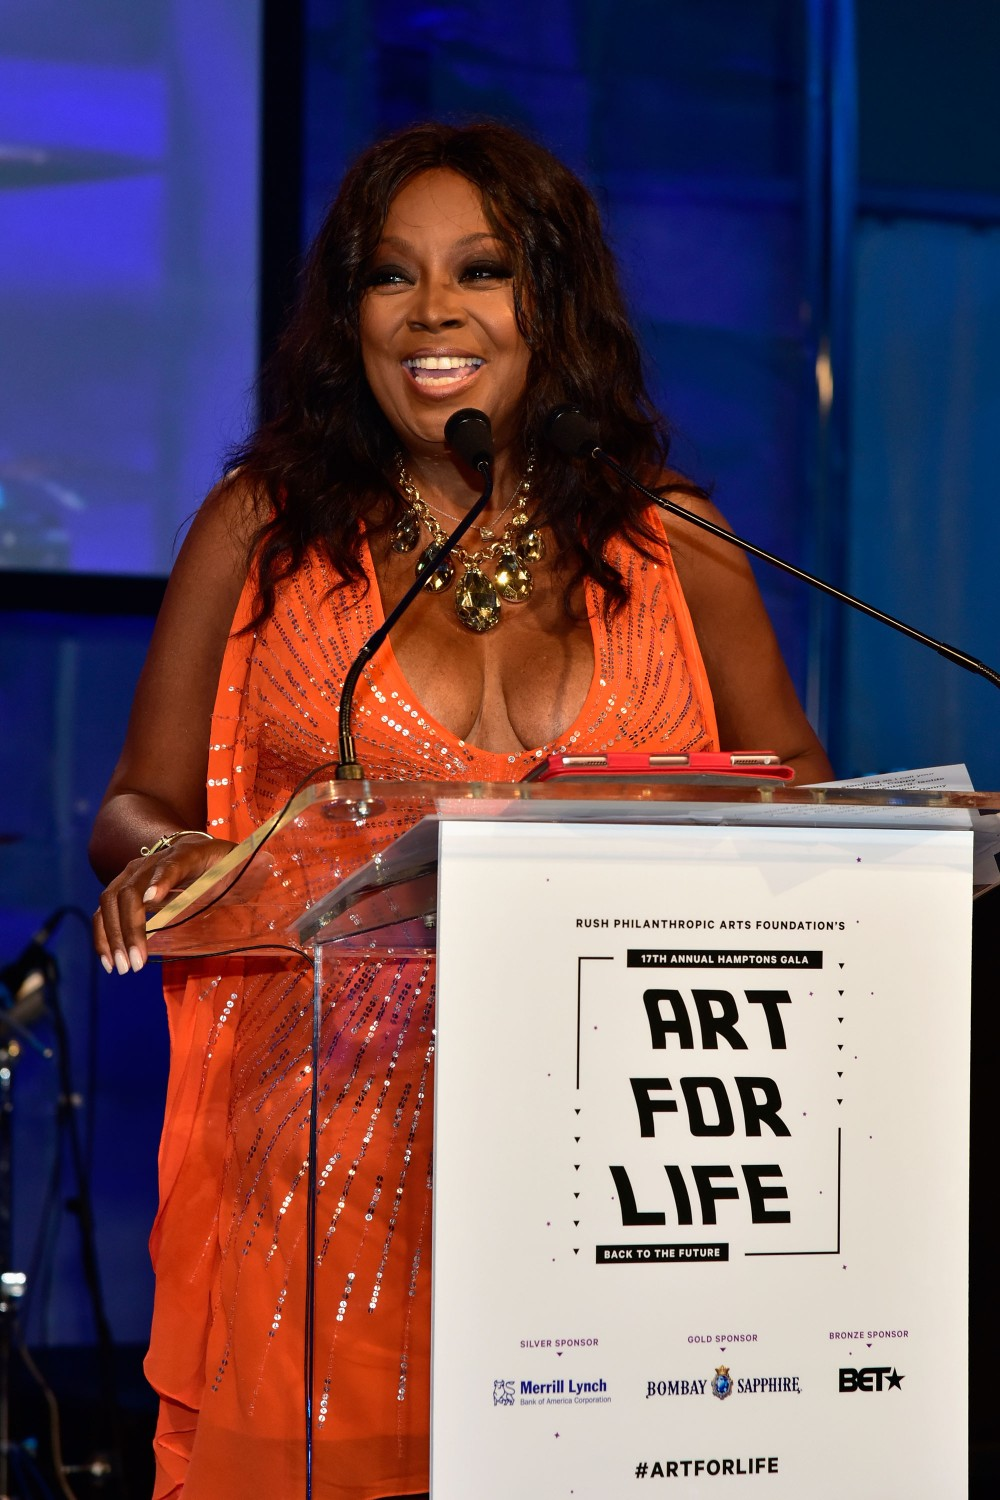 BRIDGEHAMPTON, NY - JULY 16:  Star Jones speaks on stage at Rush Philanthropic Arts Foundation's 2016 ART FOR LIFE Benefit presented by Bombay Sapphire Gin at Fairview Farms on July 16, 2016 in Bridgehampton, New York.  (Photo by Eugene Gologursky/Getty Images for Bombay Sapphire)